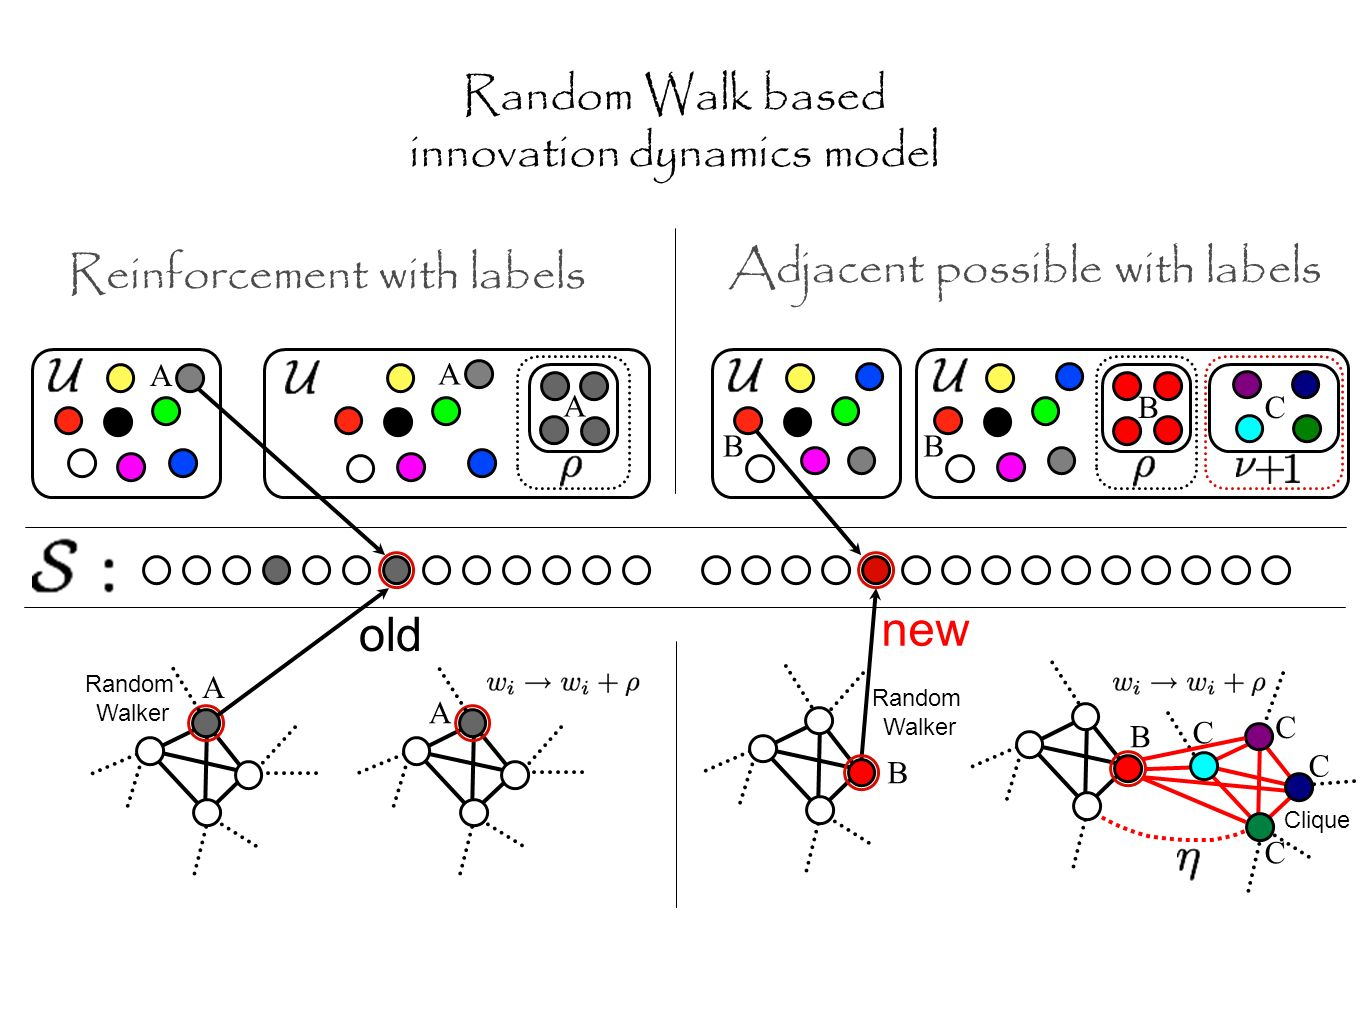 Random Walker Clique Random Walker A A A BB BC new old C C C A A B B C Random Walk based innovation dynamics model Reinforcement with labels Adjacent possible with labels